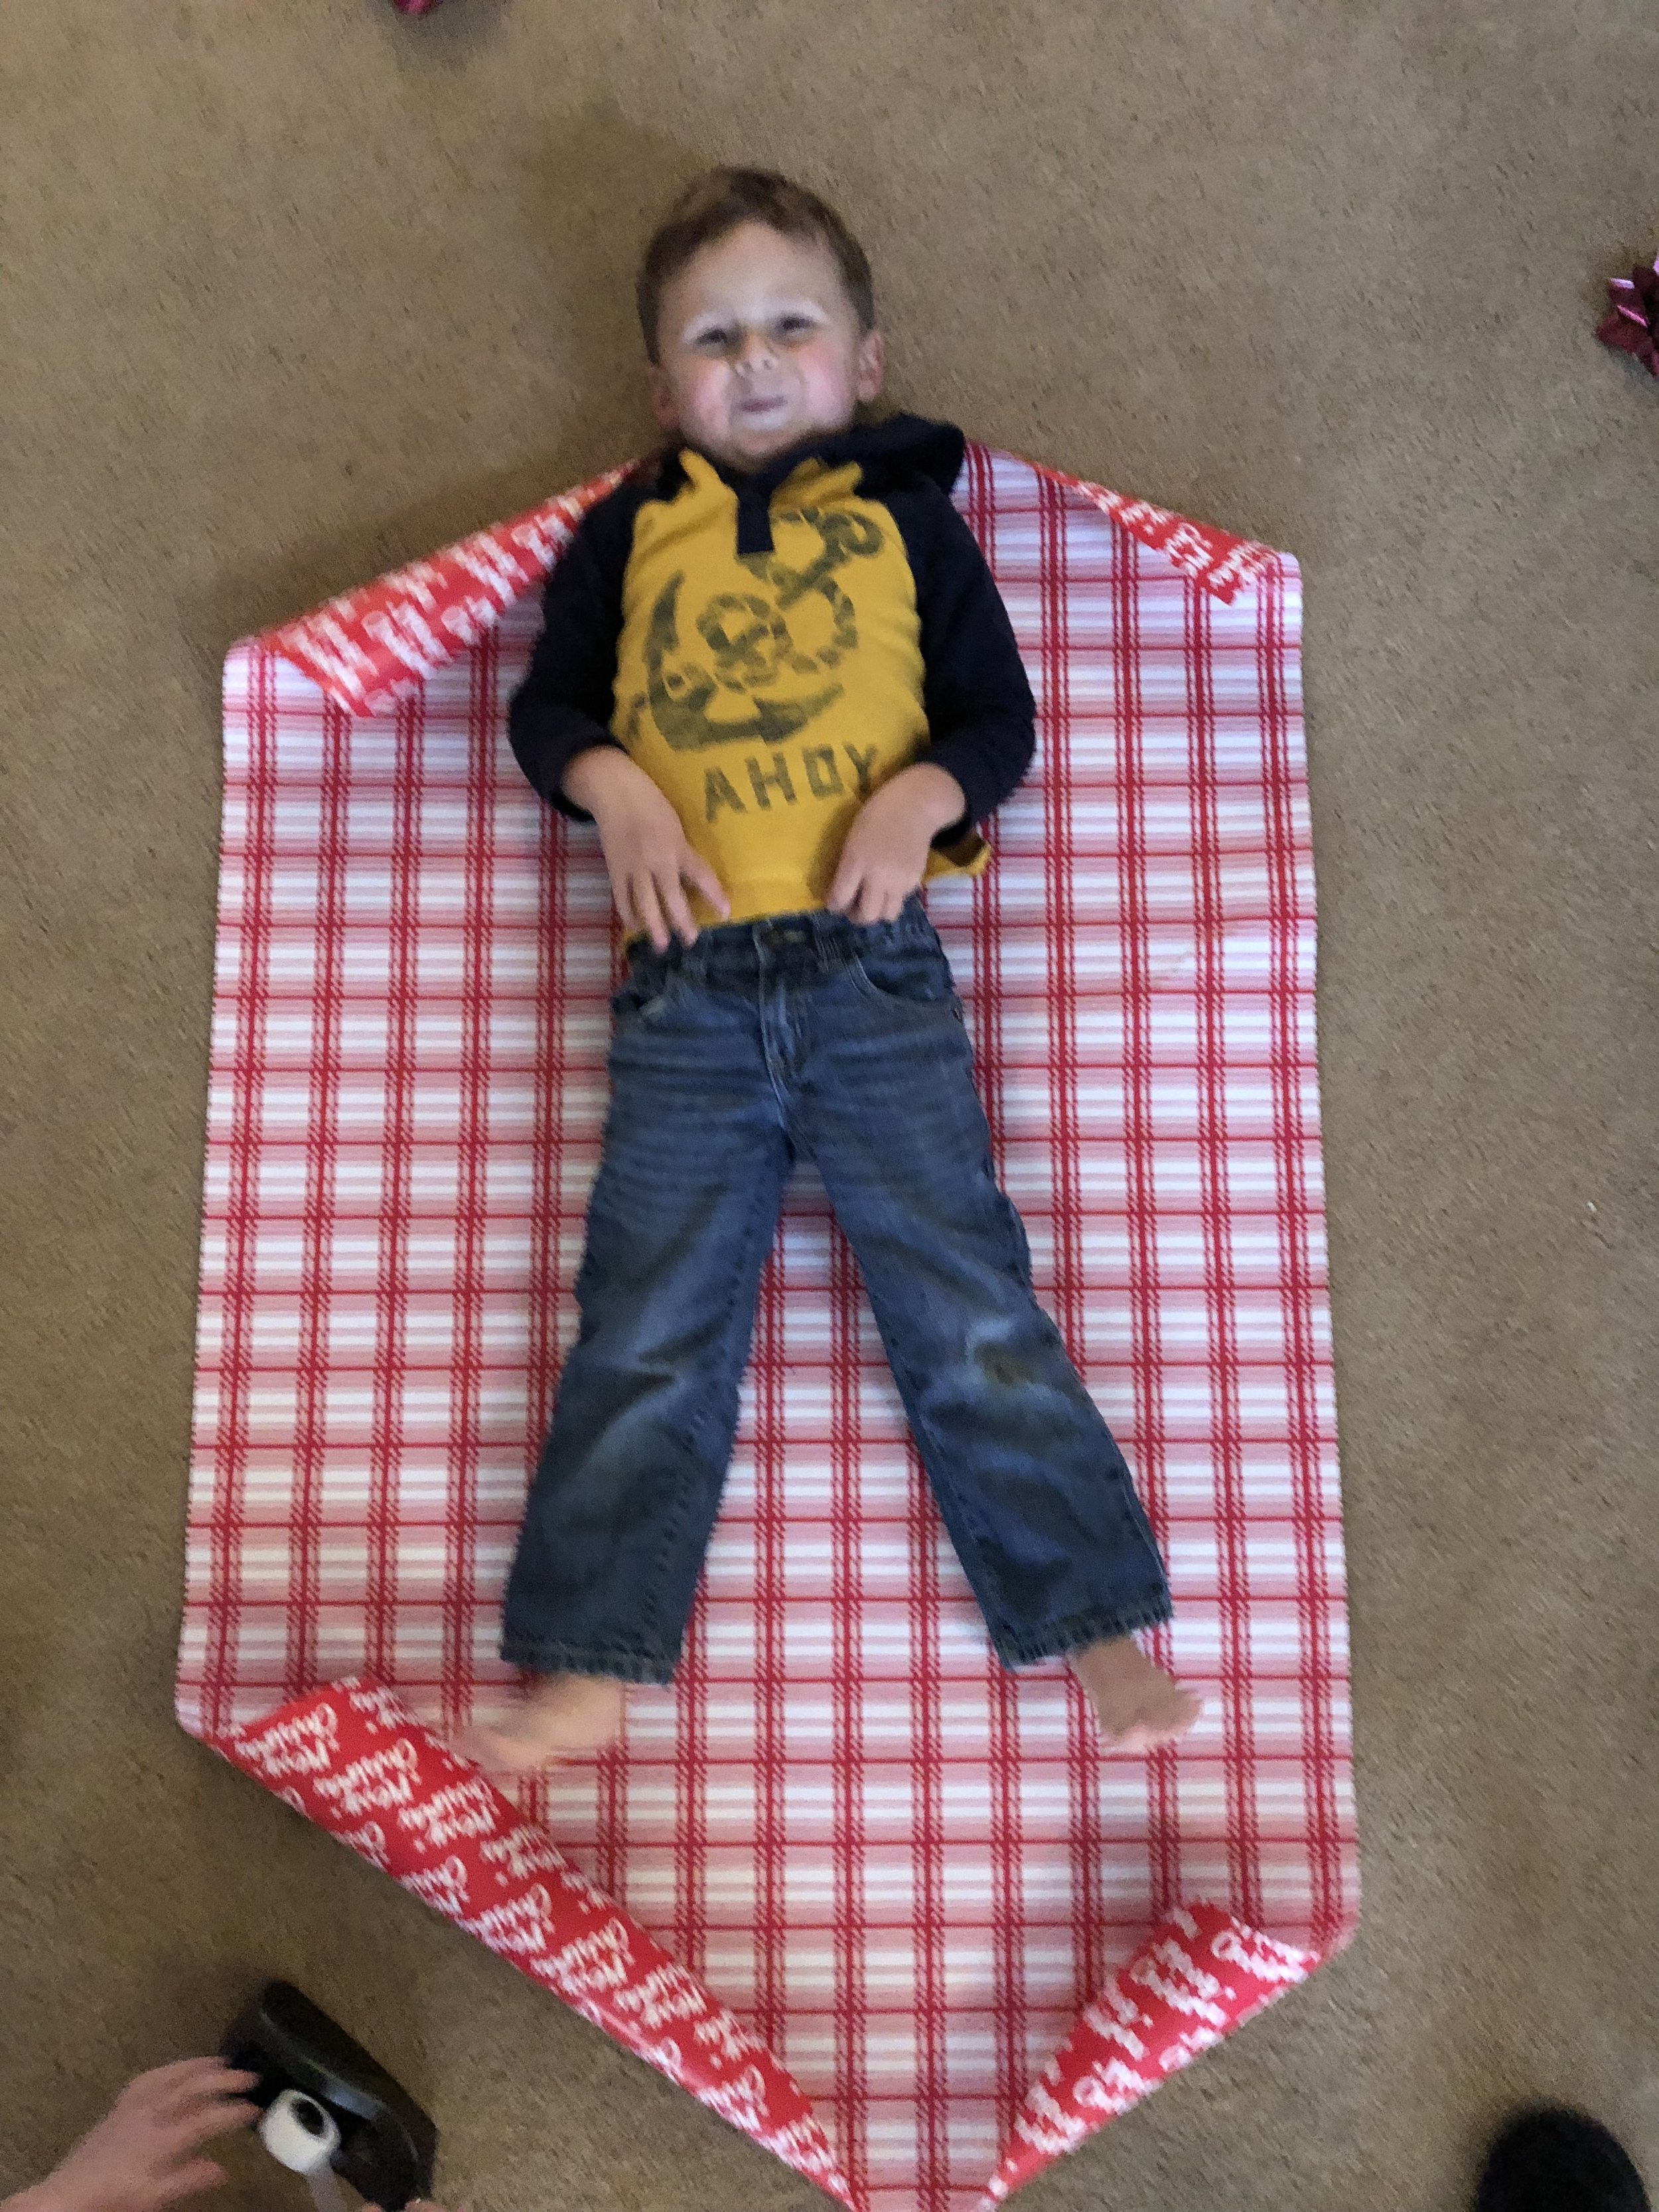 We were having so much fun, I didn't realize my photos were blurry until after we were out of wrapping paper. Whoops! This still gives you a general idea - my son did not want his head wrapped so his neck was at the edge of the paper.